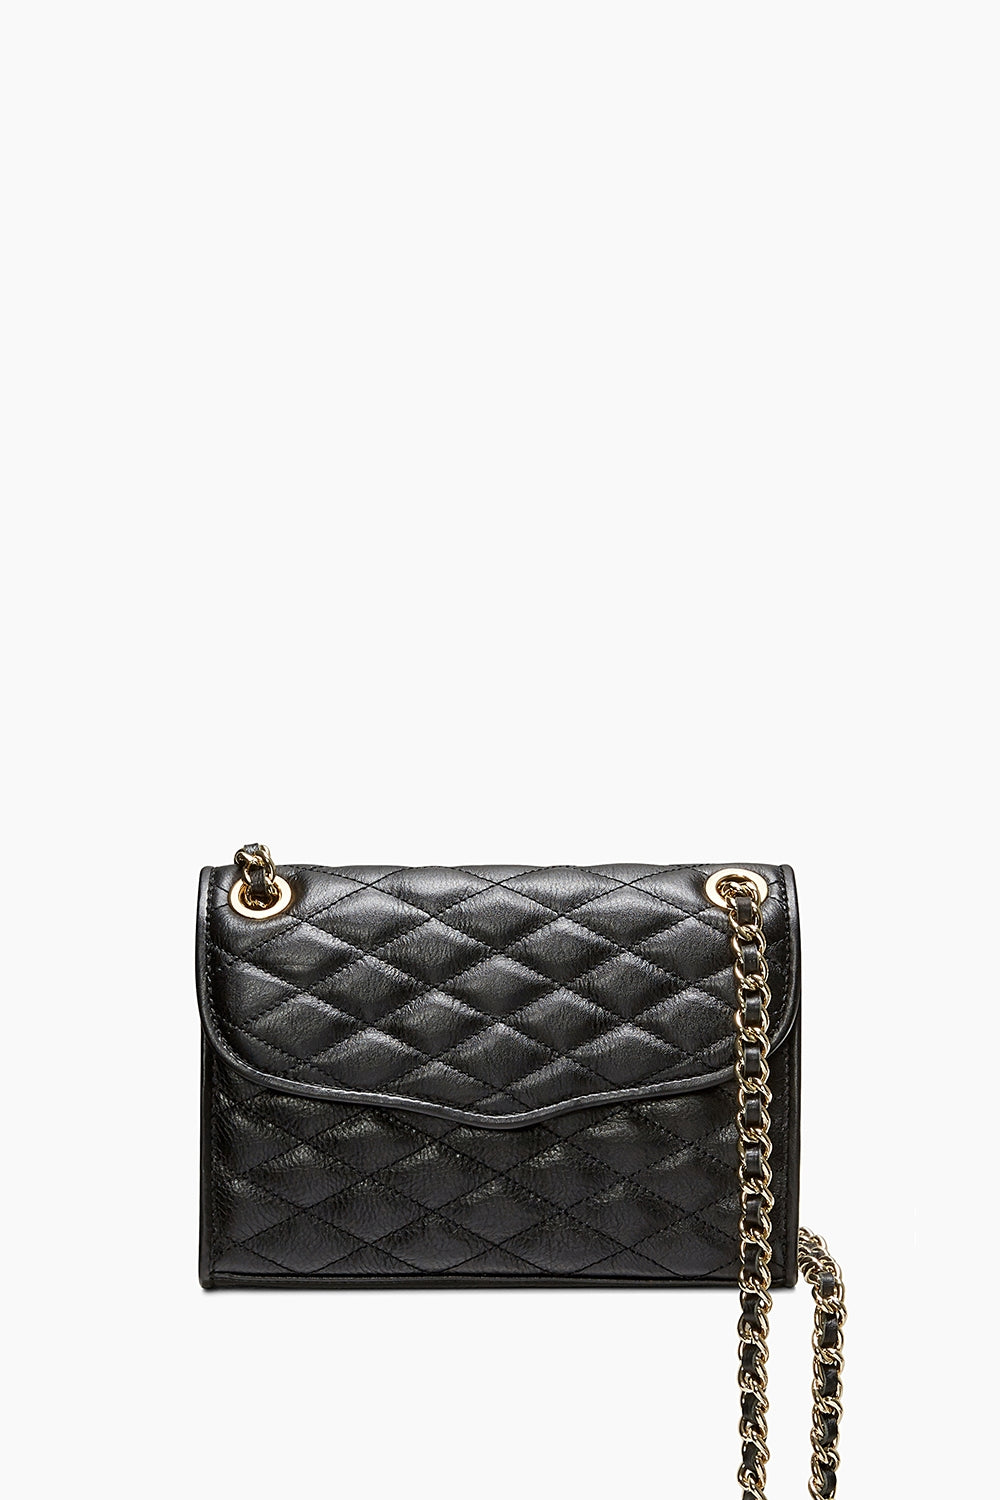 bag quilt shop to where buy leather grey rebecca minkoff affair mini women crossbody original quilted shoulder